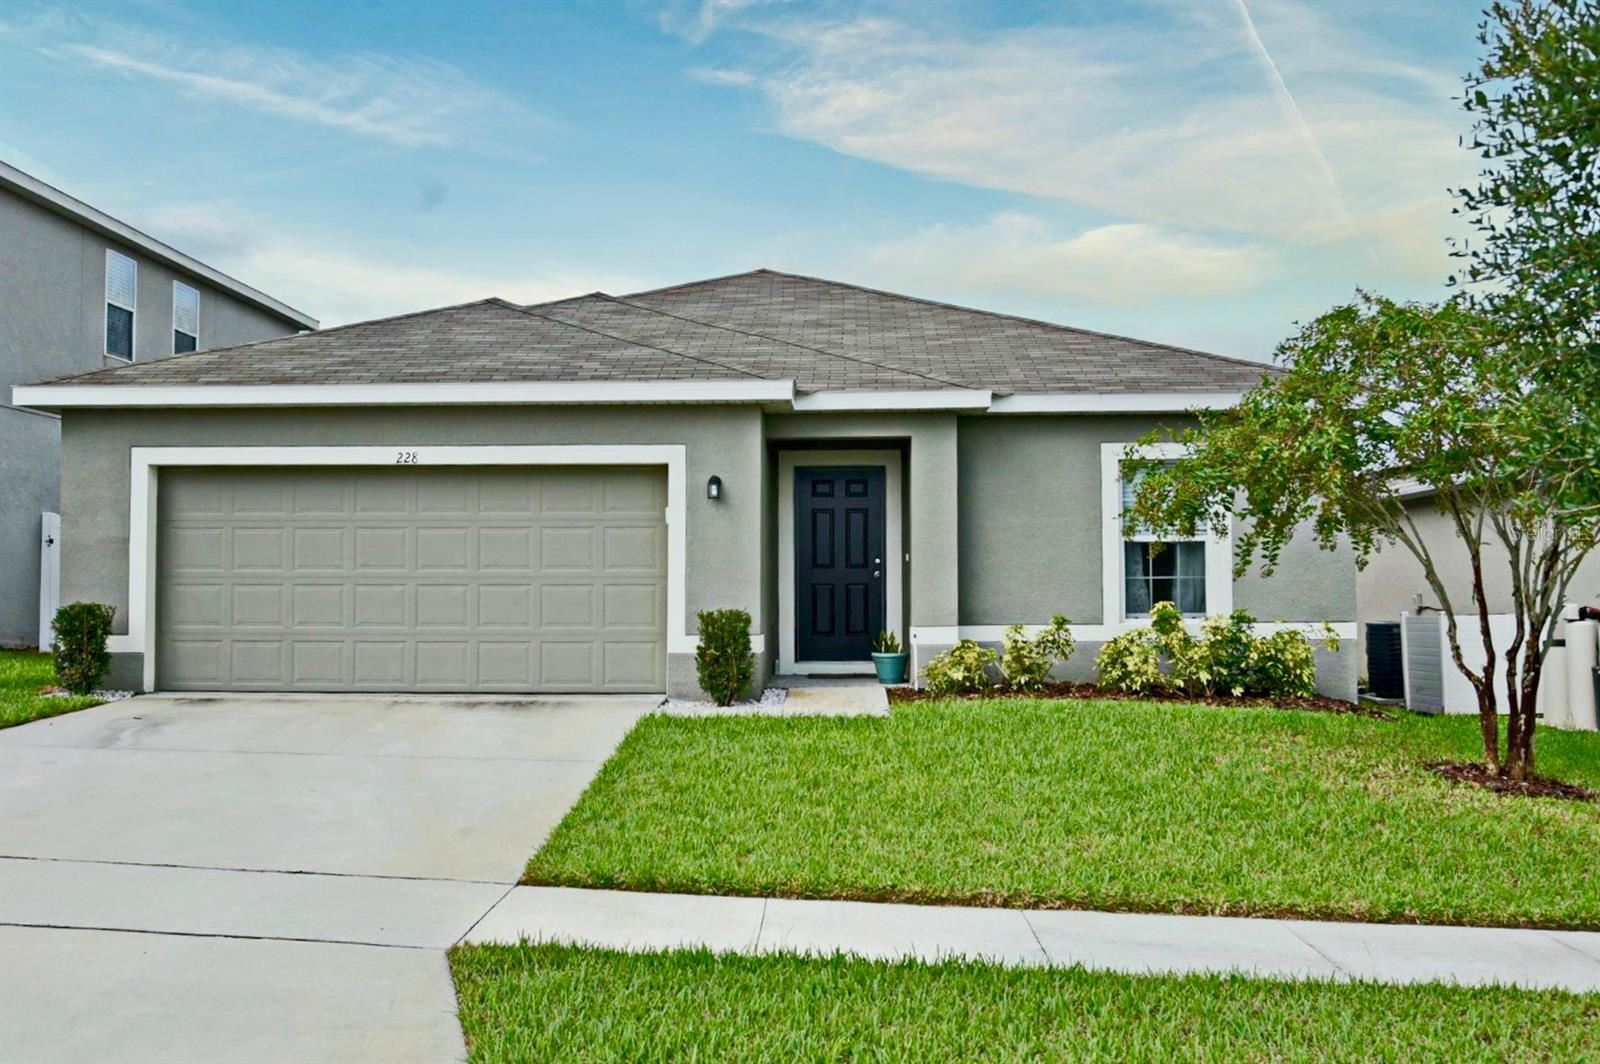 228 TANAGER STREET, Haines City, FL 33844 - #: O5974784